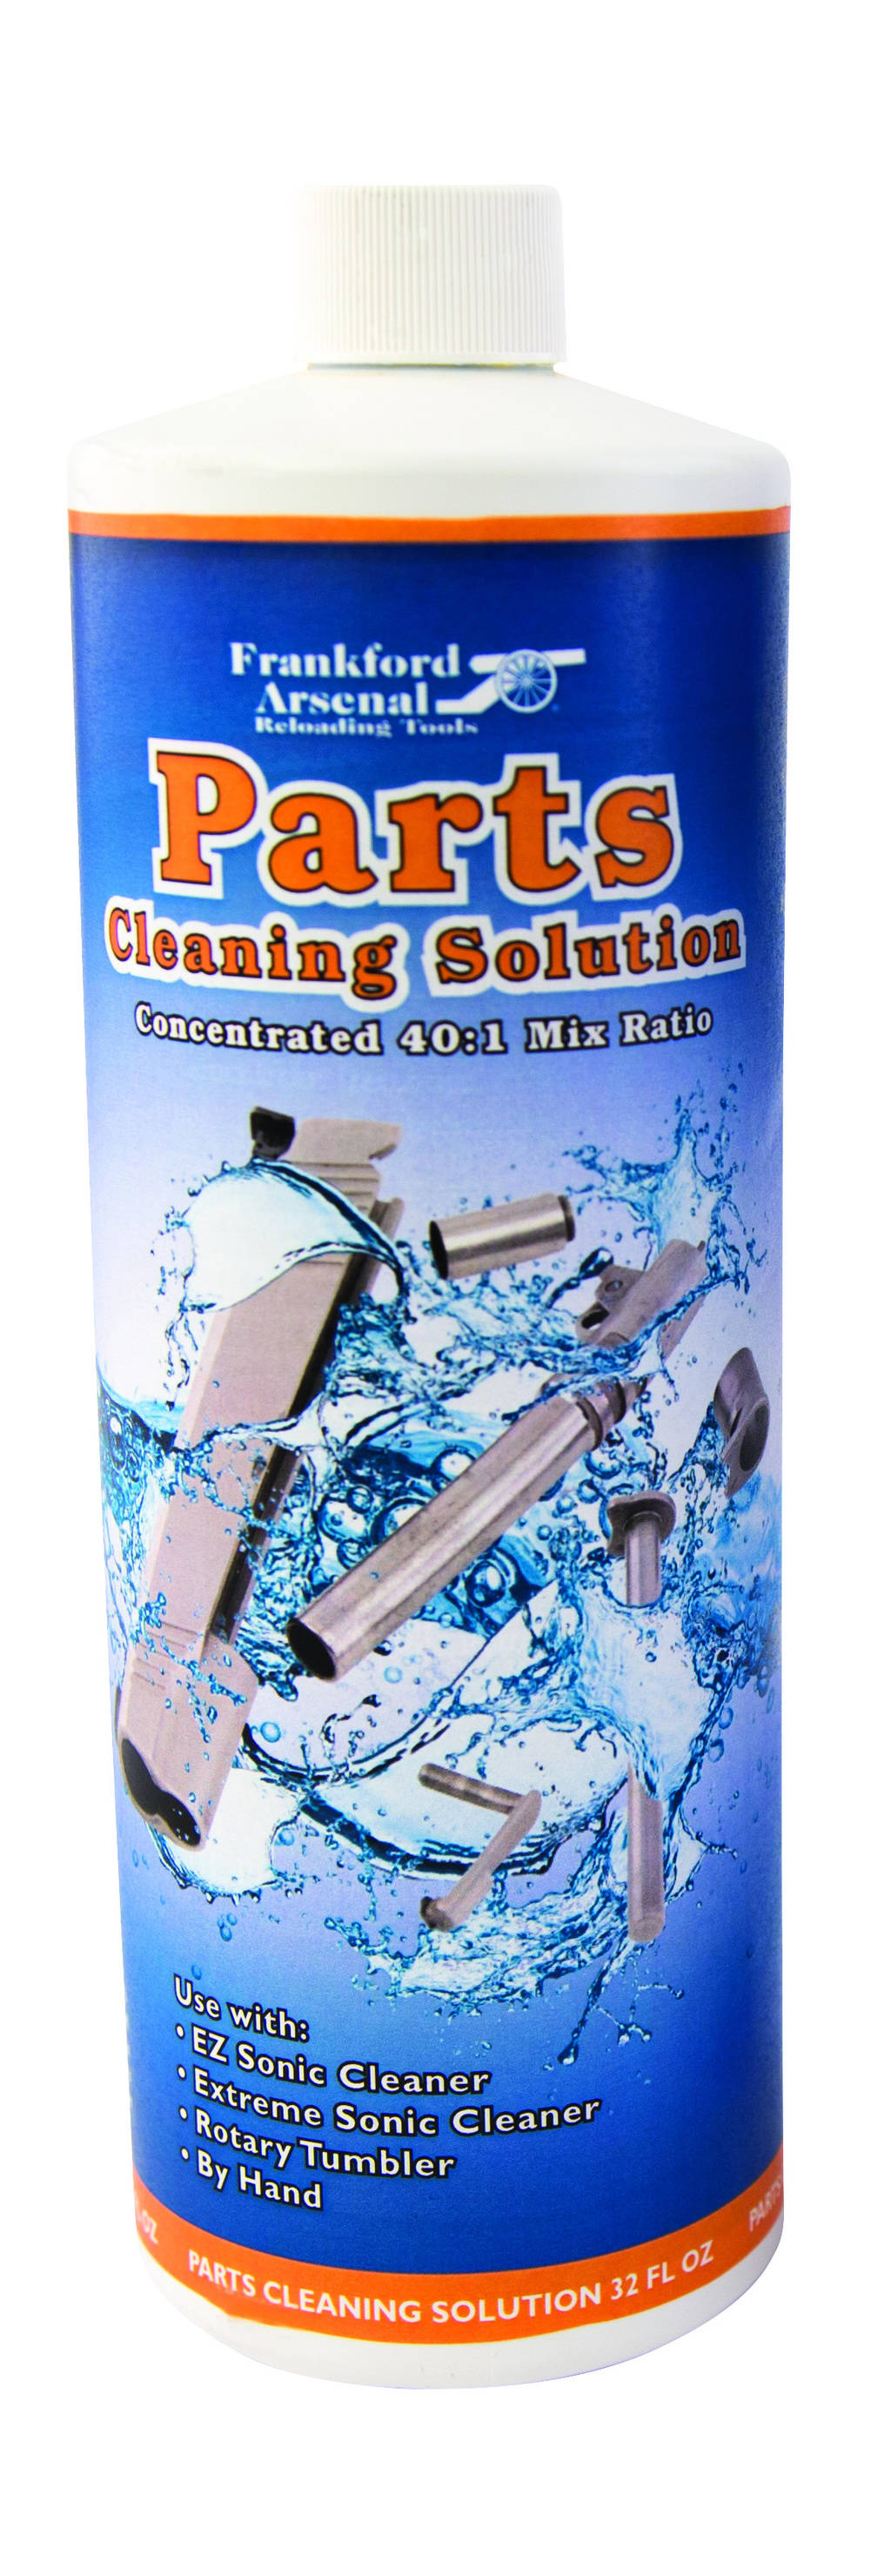 Brass Cleaning Solution - 898989 Frankford Arsenal ultrasonic Parts Solution